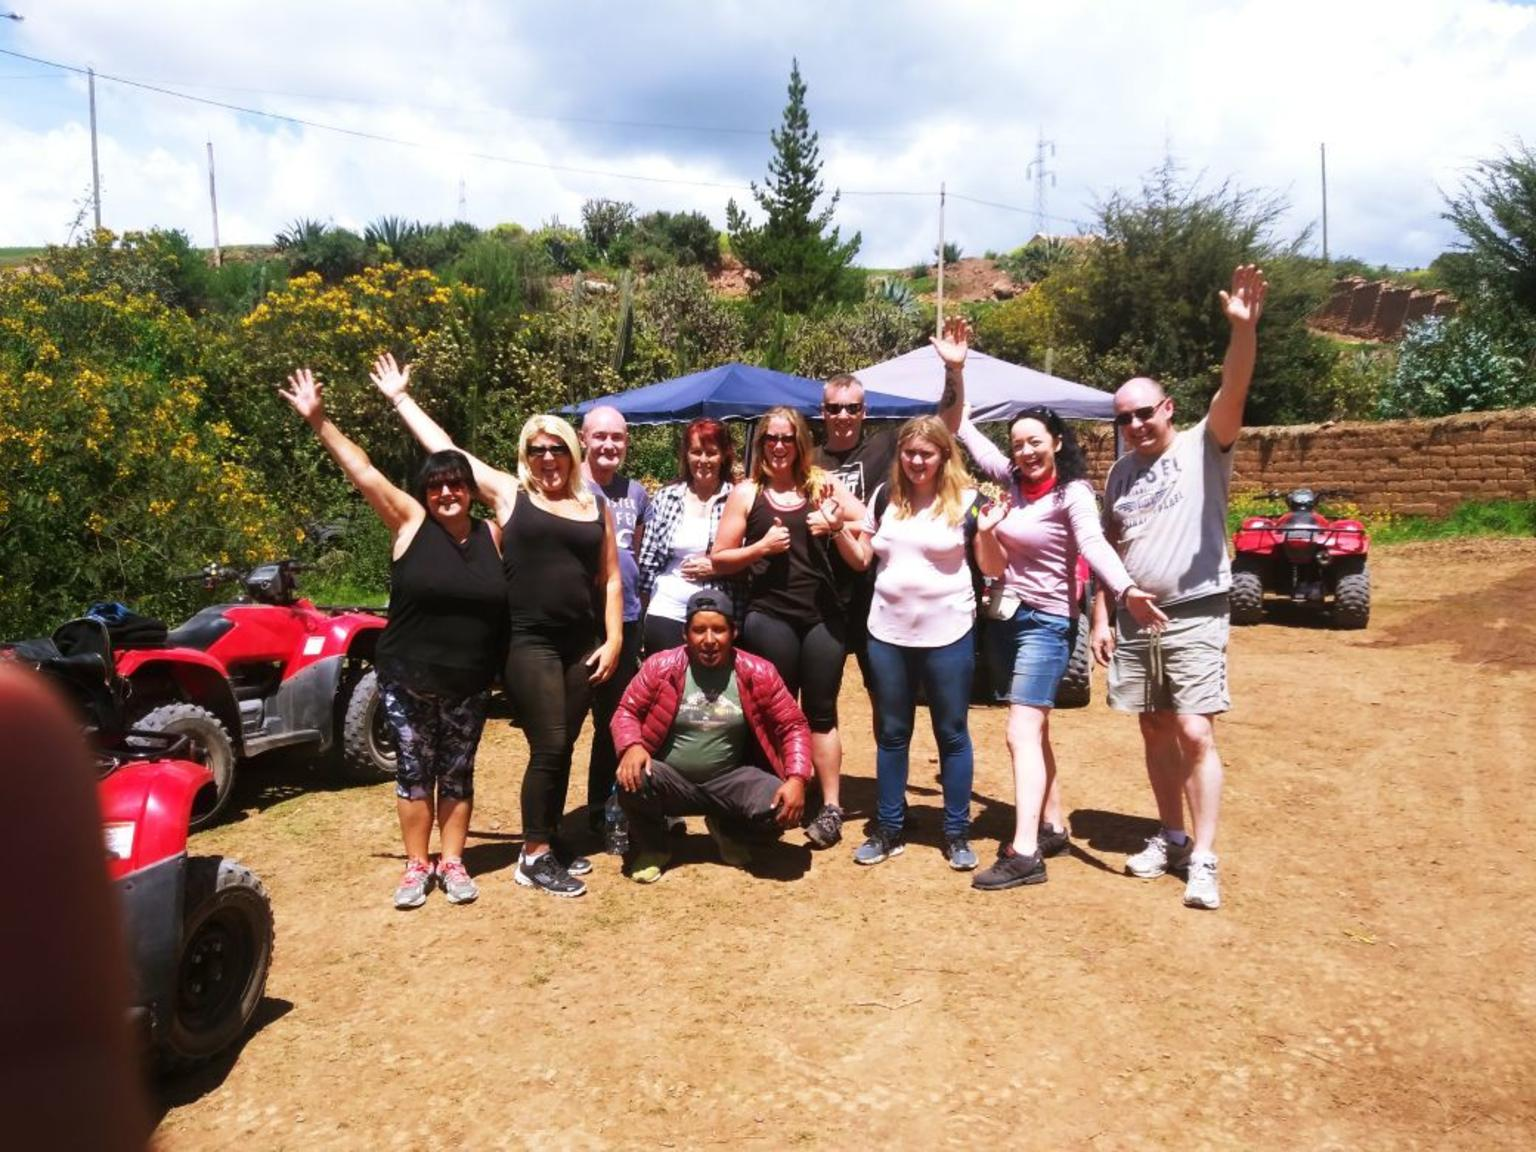 MORE PHOTOS, ATV Quad Bike Tour to Moray Maras and Salt mines from Cusco